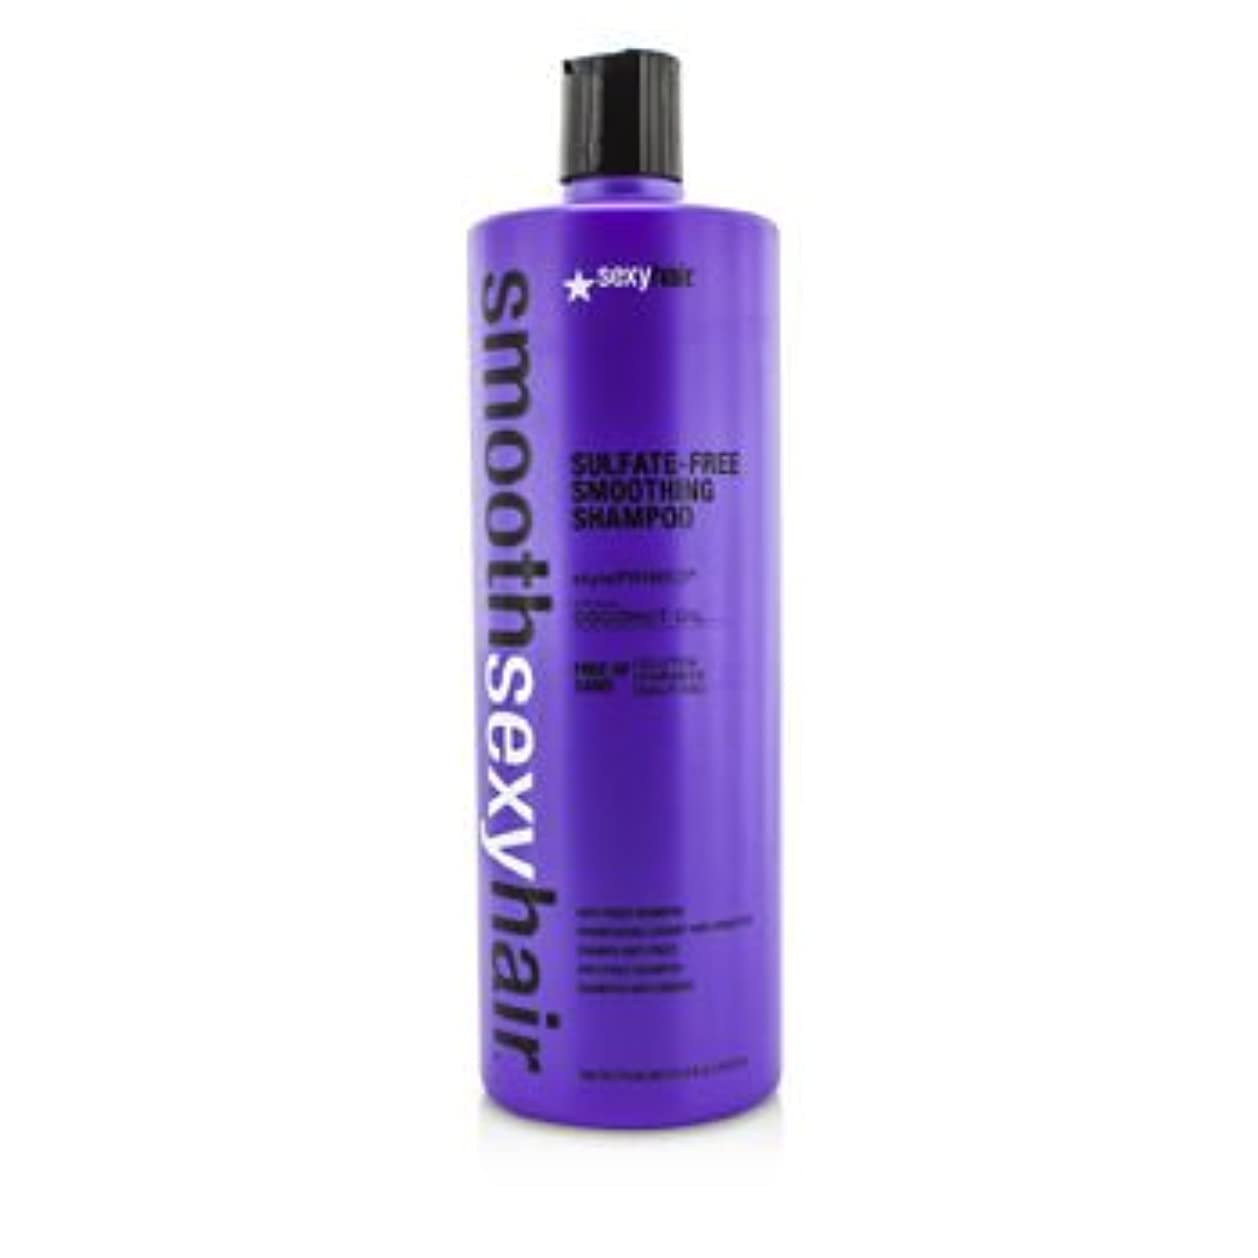 免除するアシュリータファーマン[Sexy Hair Concepts] Smooth Sexy Hair Sulfate-Free Smoothing Shampoo (Anti-Frizz) 1000ml/33.8oz